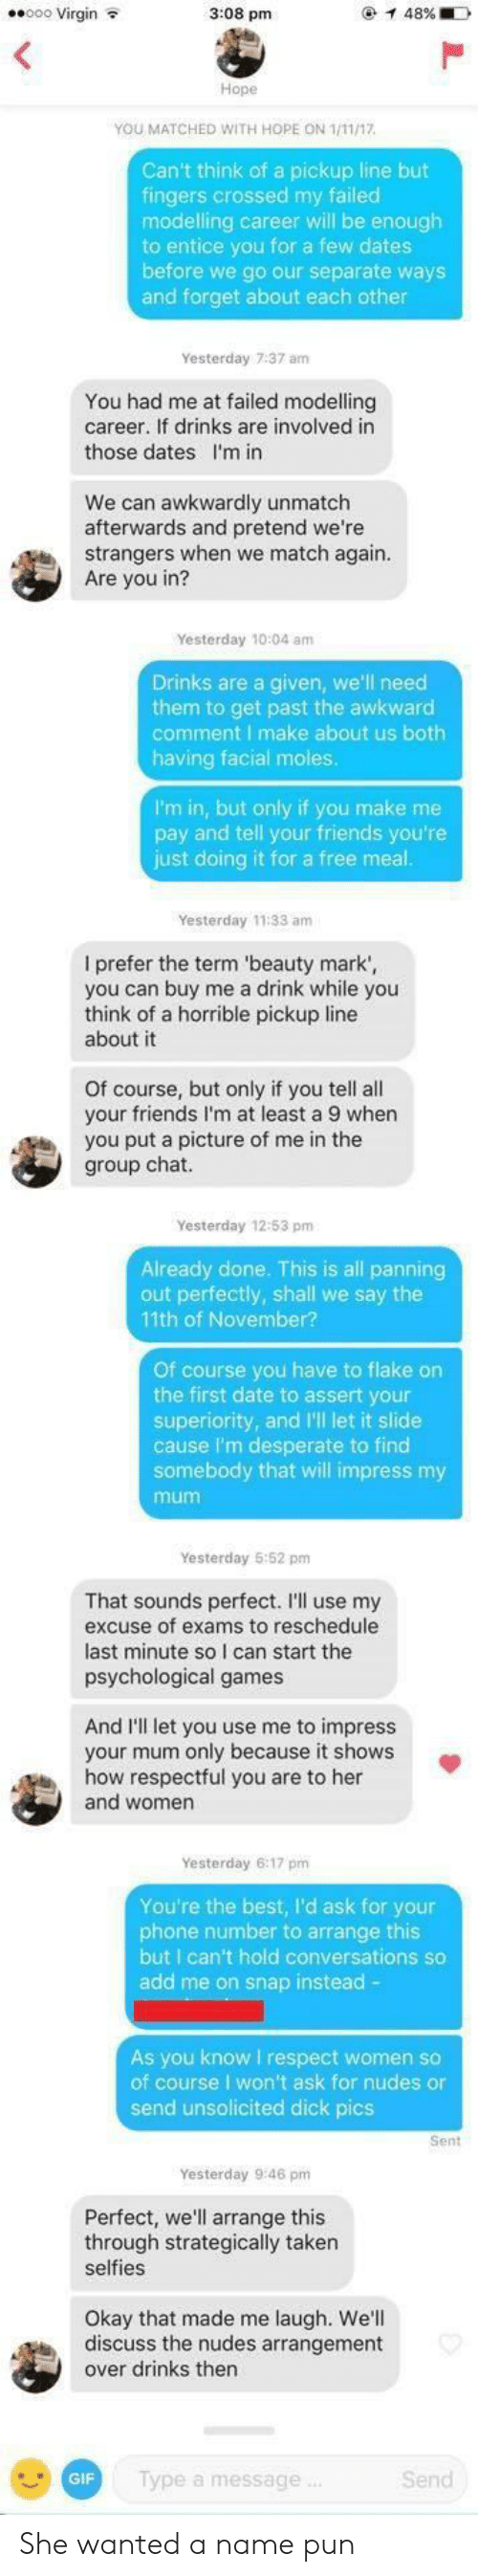 Desperate, Dick Pics, and Friends: eo0 Virgin  3:08 pm  Hope  YOU MATCHED WITH HOPE ON 1/11/17  Can't think of a pickup line but  fingers crossed my failed  modelling career will be enough  to entice you for a few dates  before we go our separate ways  and forget about each other  Yesterday 7:37 am  You had me at failed modelling  career. If drinks are involved in  those dates I'm in  We can awkwardly unmatch  afterwards and pretend we're  strangers when we match again  Are you in?  Yesterday 10:04 amm  Drinks are a given, we'll need  them to get past the awkward  comment I make about us both  having facial moles  I'm in, but only if you make me  pay and tell your friends you're  just doing it for a free meal  Yesterday 11:33 am  I prefer the term 'beauty mark',  you can buy me a drink while you  think of a horrible pickup line  about it  Of course, but only if you tell all  your friends I'm at least a 9 when  you put a picture of me in the  group chat  Yesterday 12:53 pm  Already done. This is all panning  out perfectly, shall we say the  11th of November?  Of course you have to flake on  the first date to assert your  superiority, and I'll let it slide  cause I'm desperate to find  somebody that will impress my  mum  Yesterday 5:52 pm  That sounds perfect. I'll use my  excuse of exams to reschedule  last minute so I can start the  psychological games  And I'll let you use me to impress  your mum only because it shows  how respectful you are to her  and women  Yesterday 6:17 pm  You're the best, I'd ask for your  phone number to arrange this  but I can't hold conversations so  add me on snap instead -  As you know I respect women so  of course I won't ask for nudes or  send unsolicited dick pics  Sent  Yesterday 9:46 pm  Perfect, we'll arrange this  through strategically taken  selfies  Okay that made me laugh. We'll  discuss the nudes arrangement  over drinks thern  GIF  lype a message  Send She wanted a name pun